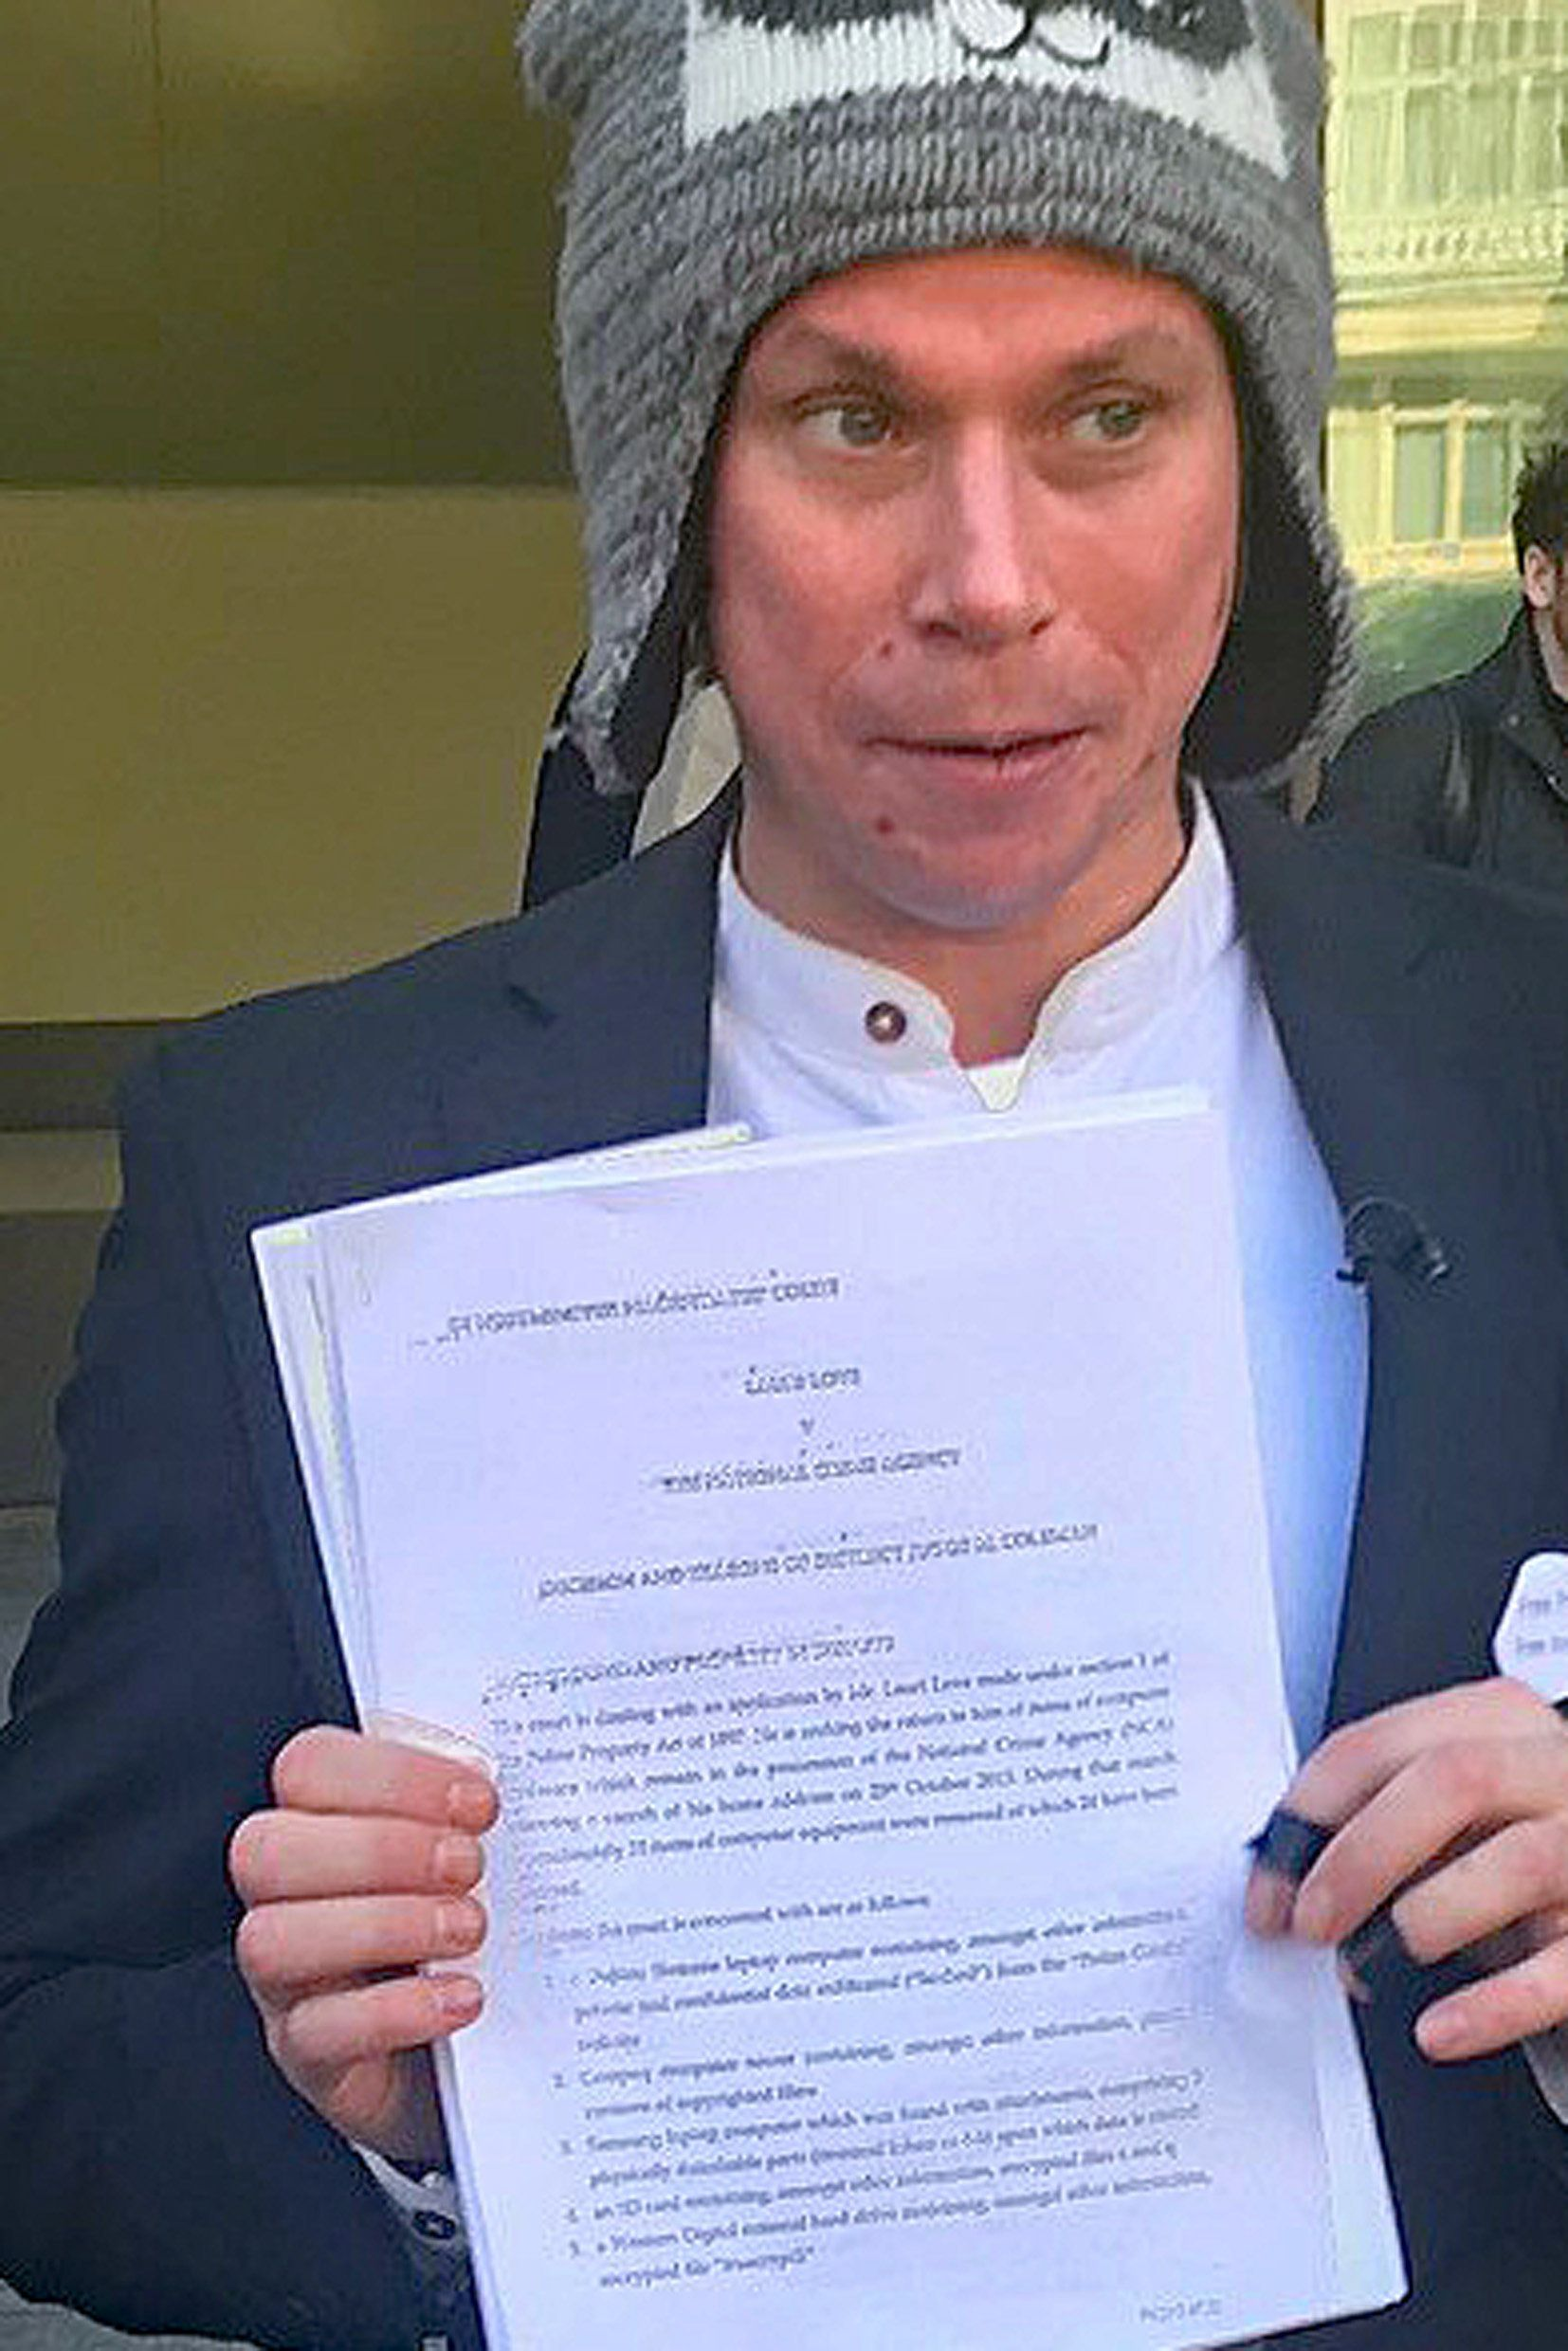 Alleged Cyber-Hacker Lauri Love Loses Bid To Have Seized Computers